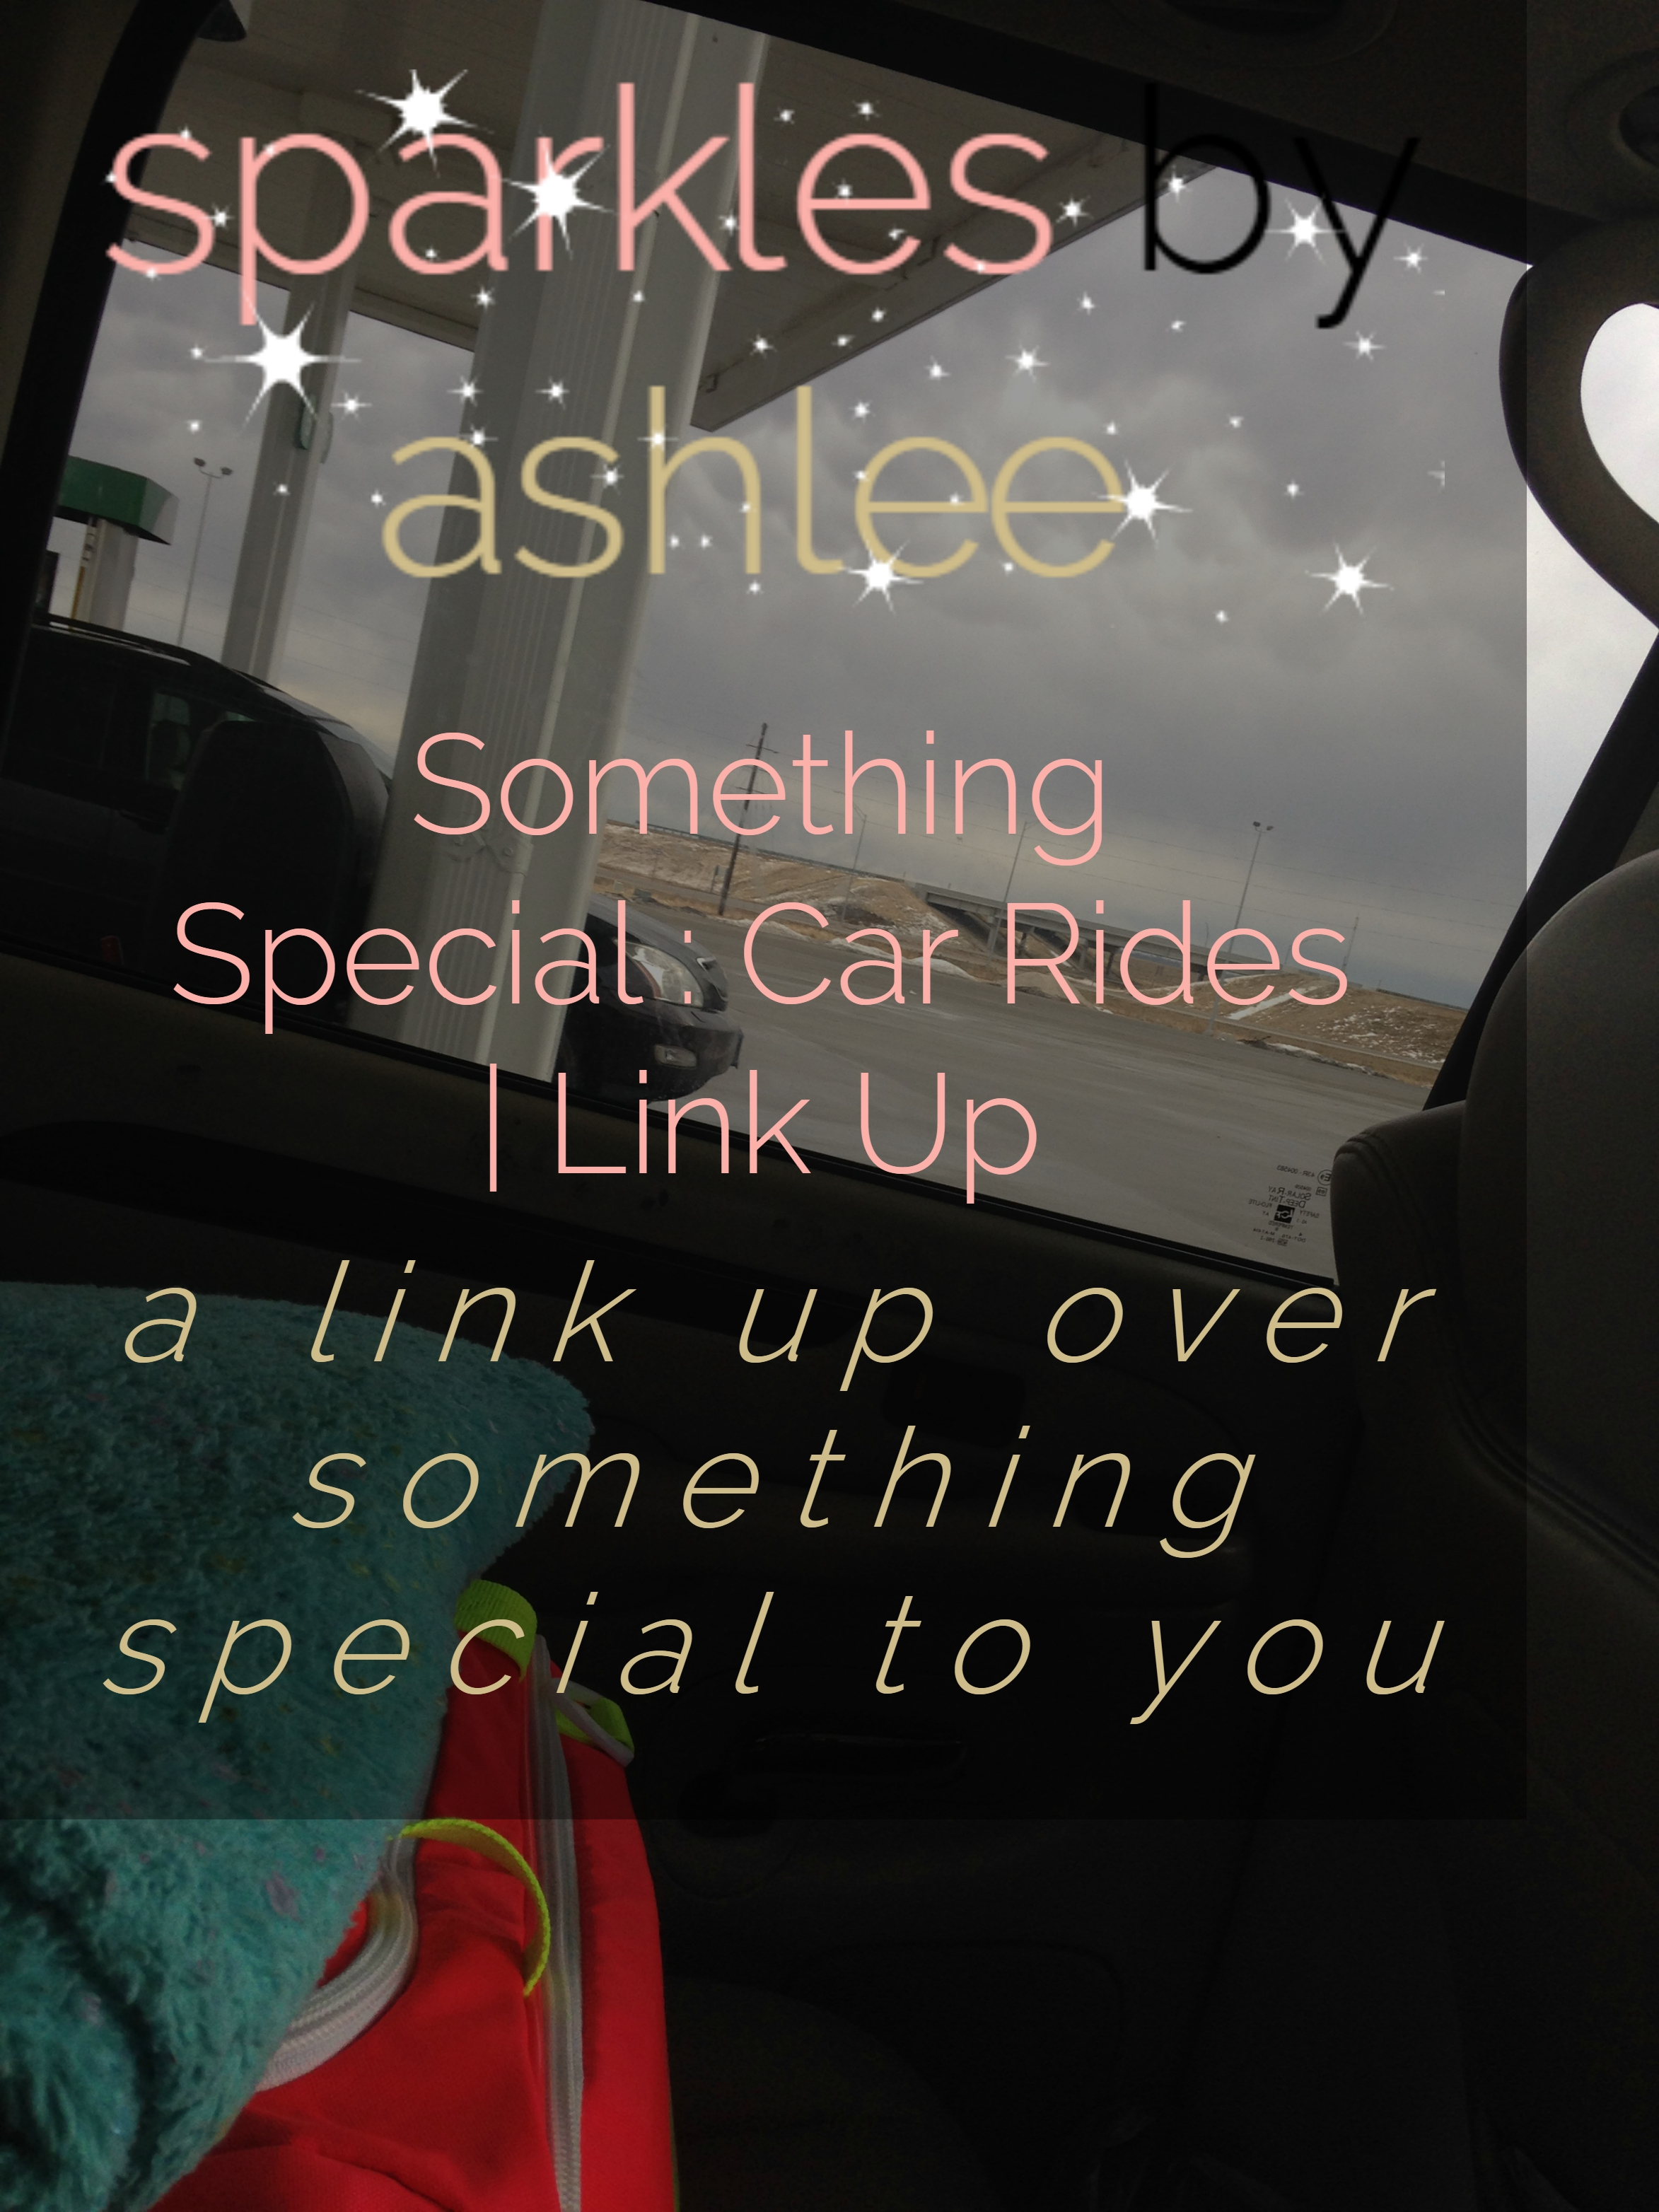 Something-Special-Car-Rides-Link-Up-Sparkles-by-Ashlee.jpg